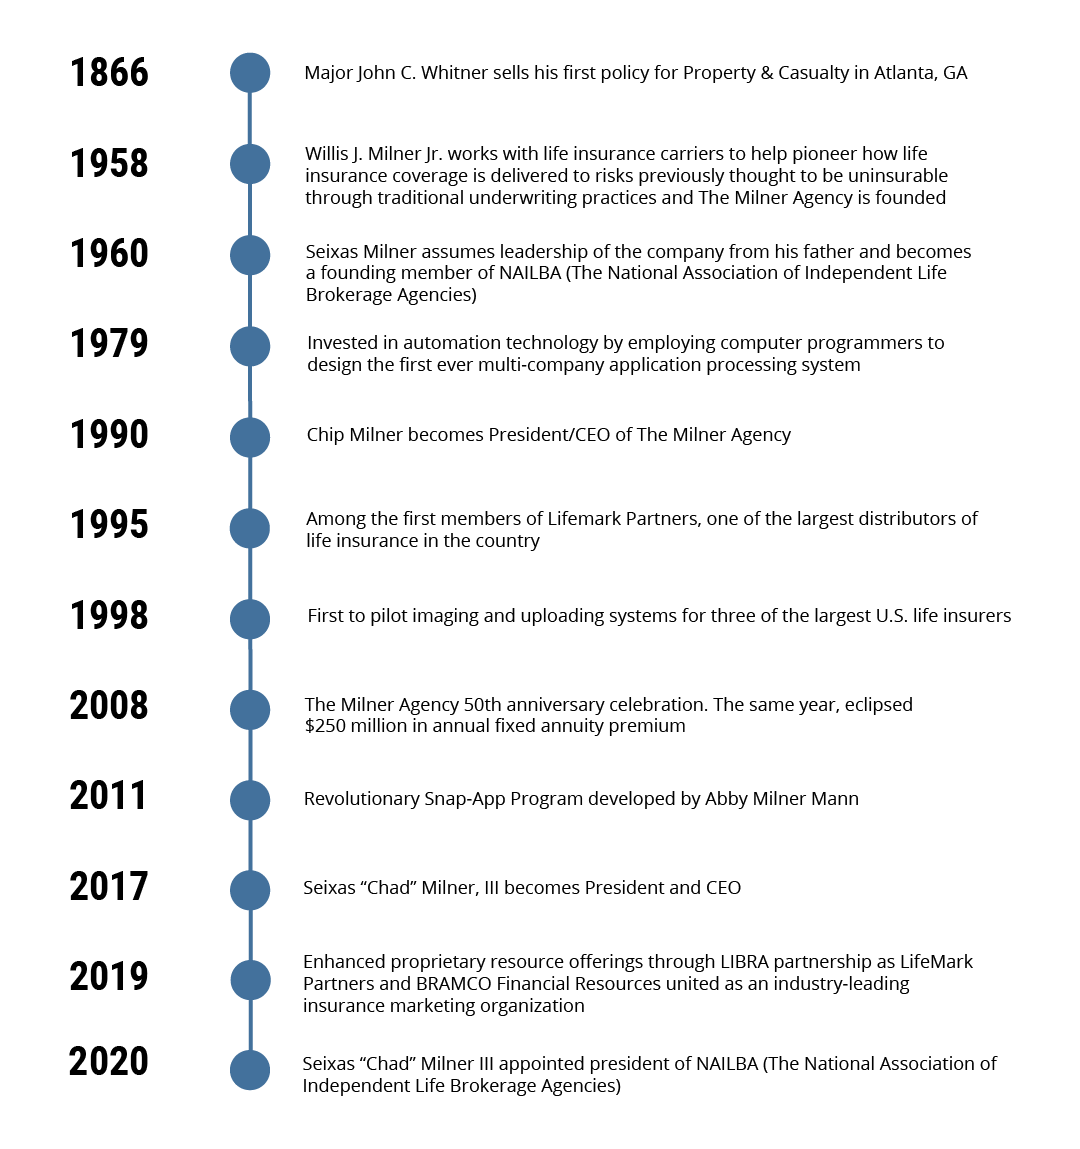 The Milner Group historical timeline